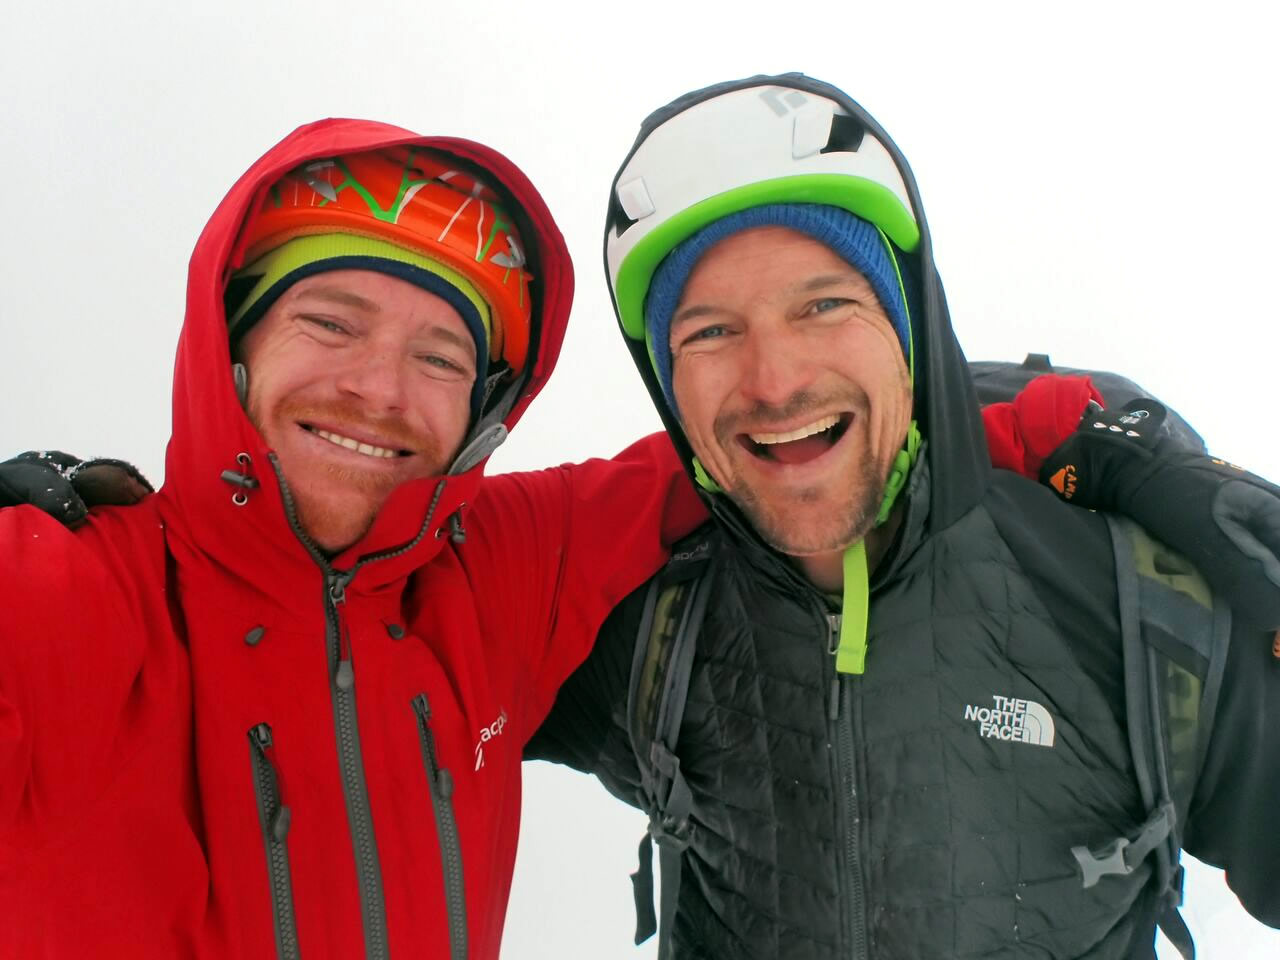 Ben Dare (left) and Steve Skelton (right), happy and a little teary eyed on a view-less summit after completing their new route on Taulliraju. [Photo] Ben Dare